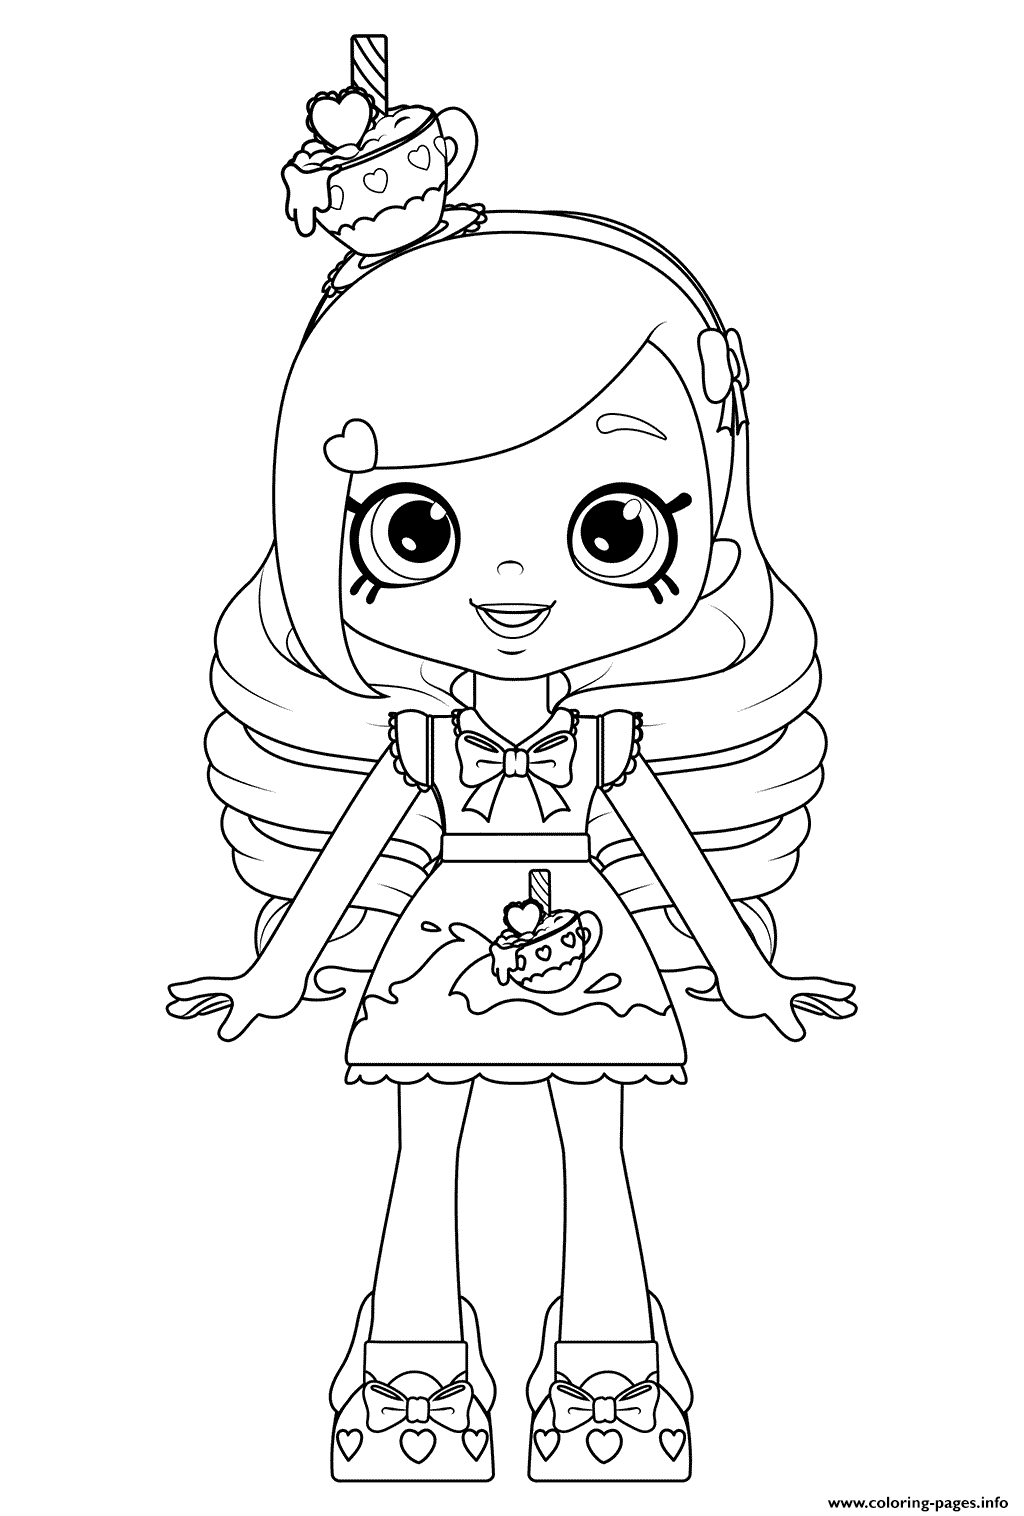 Eenhoorn Kleurplaat My Little Pony Kirstea Shoppies Doll Coloring Pages Printable